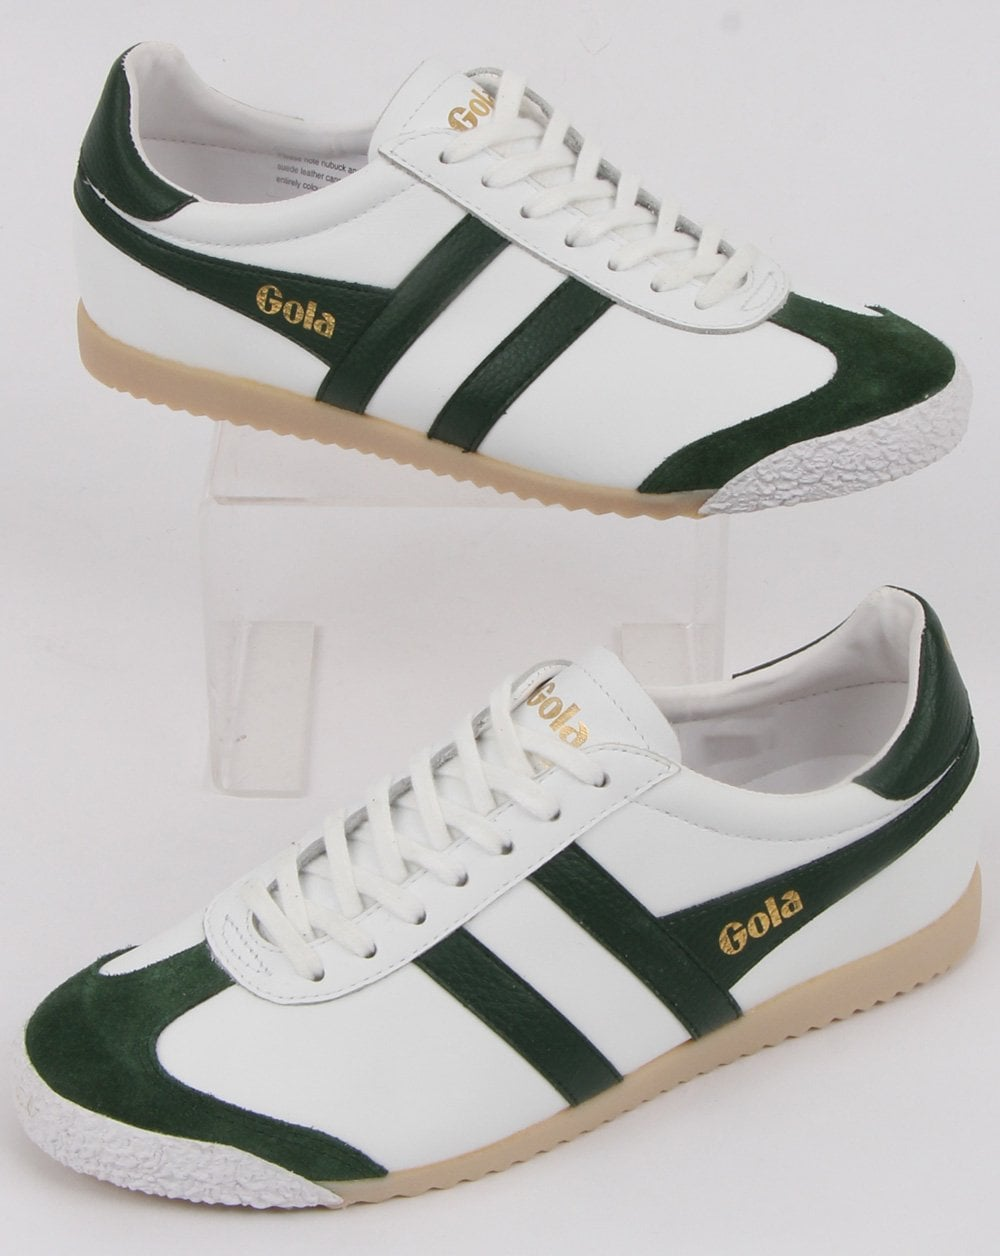 Gola Harrier 50 Leather Trainer in